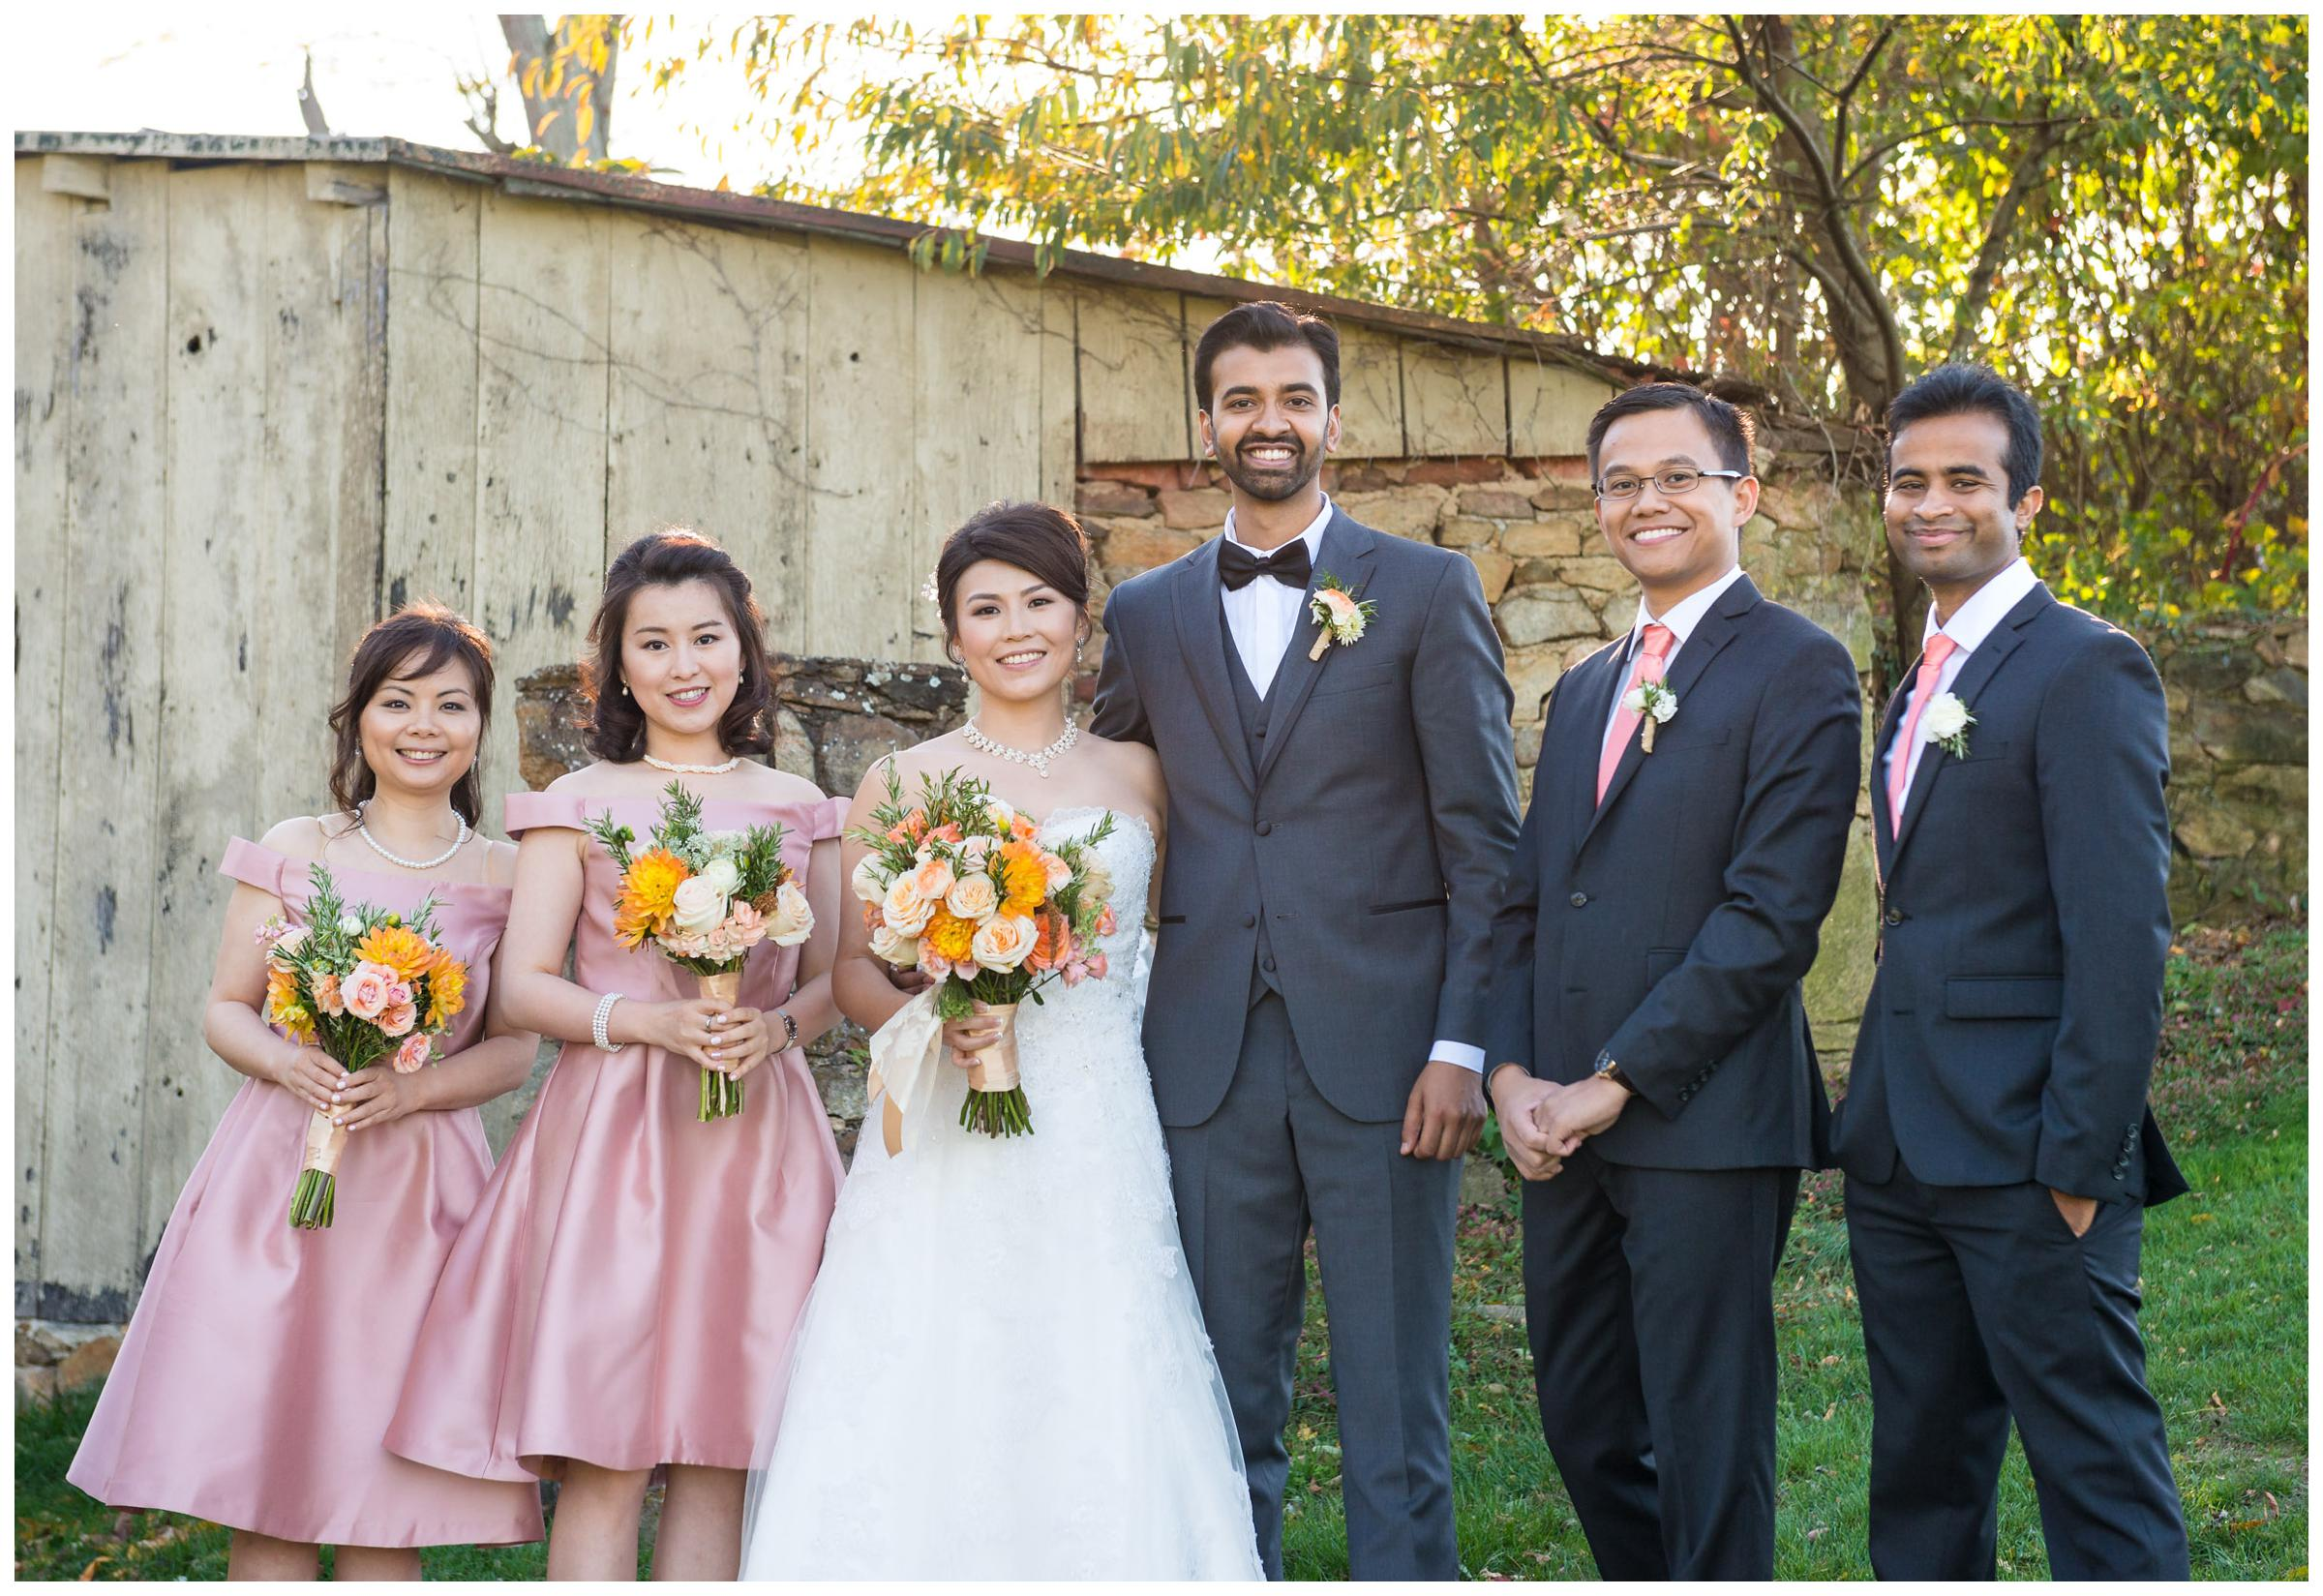 Portrait of bridal party near stone ruins at rustic wedding.